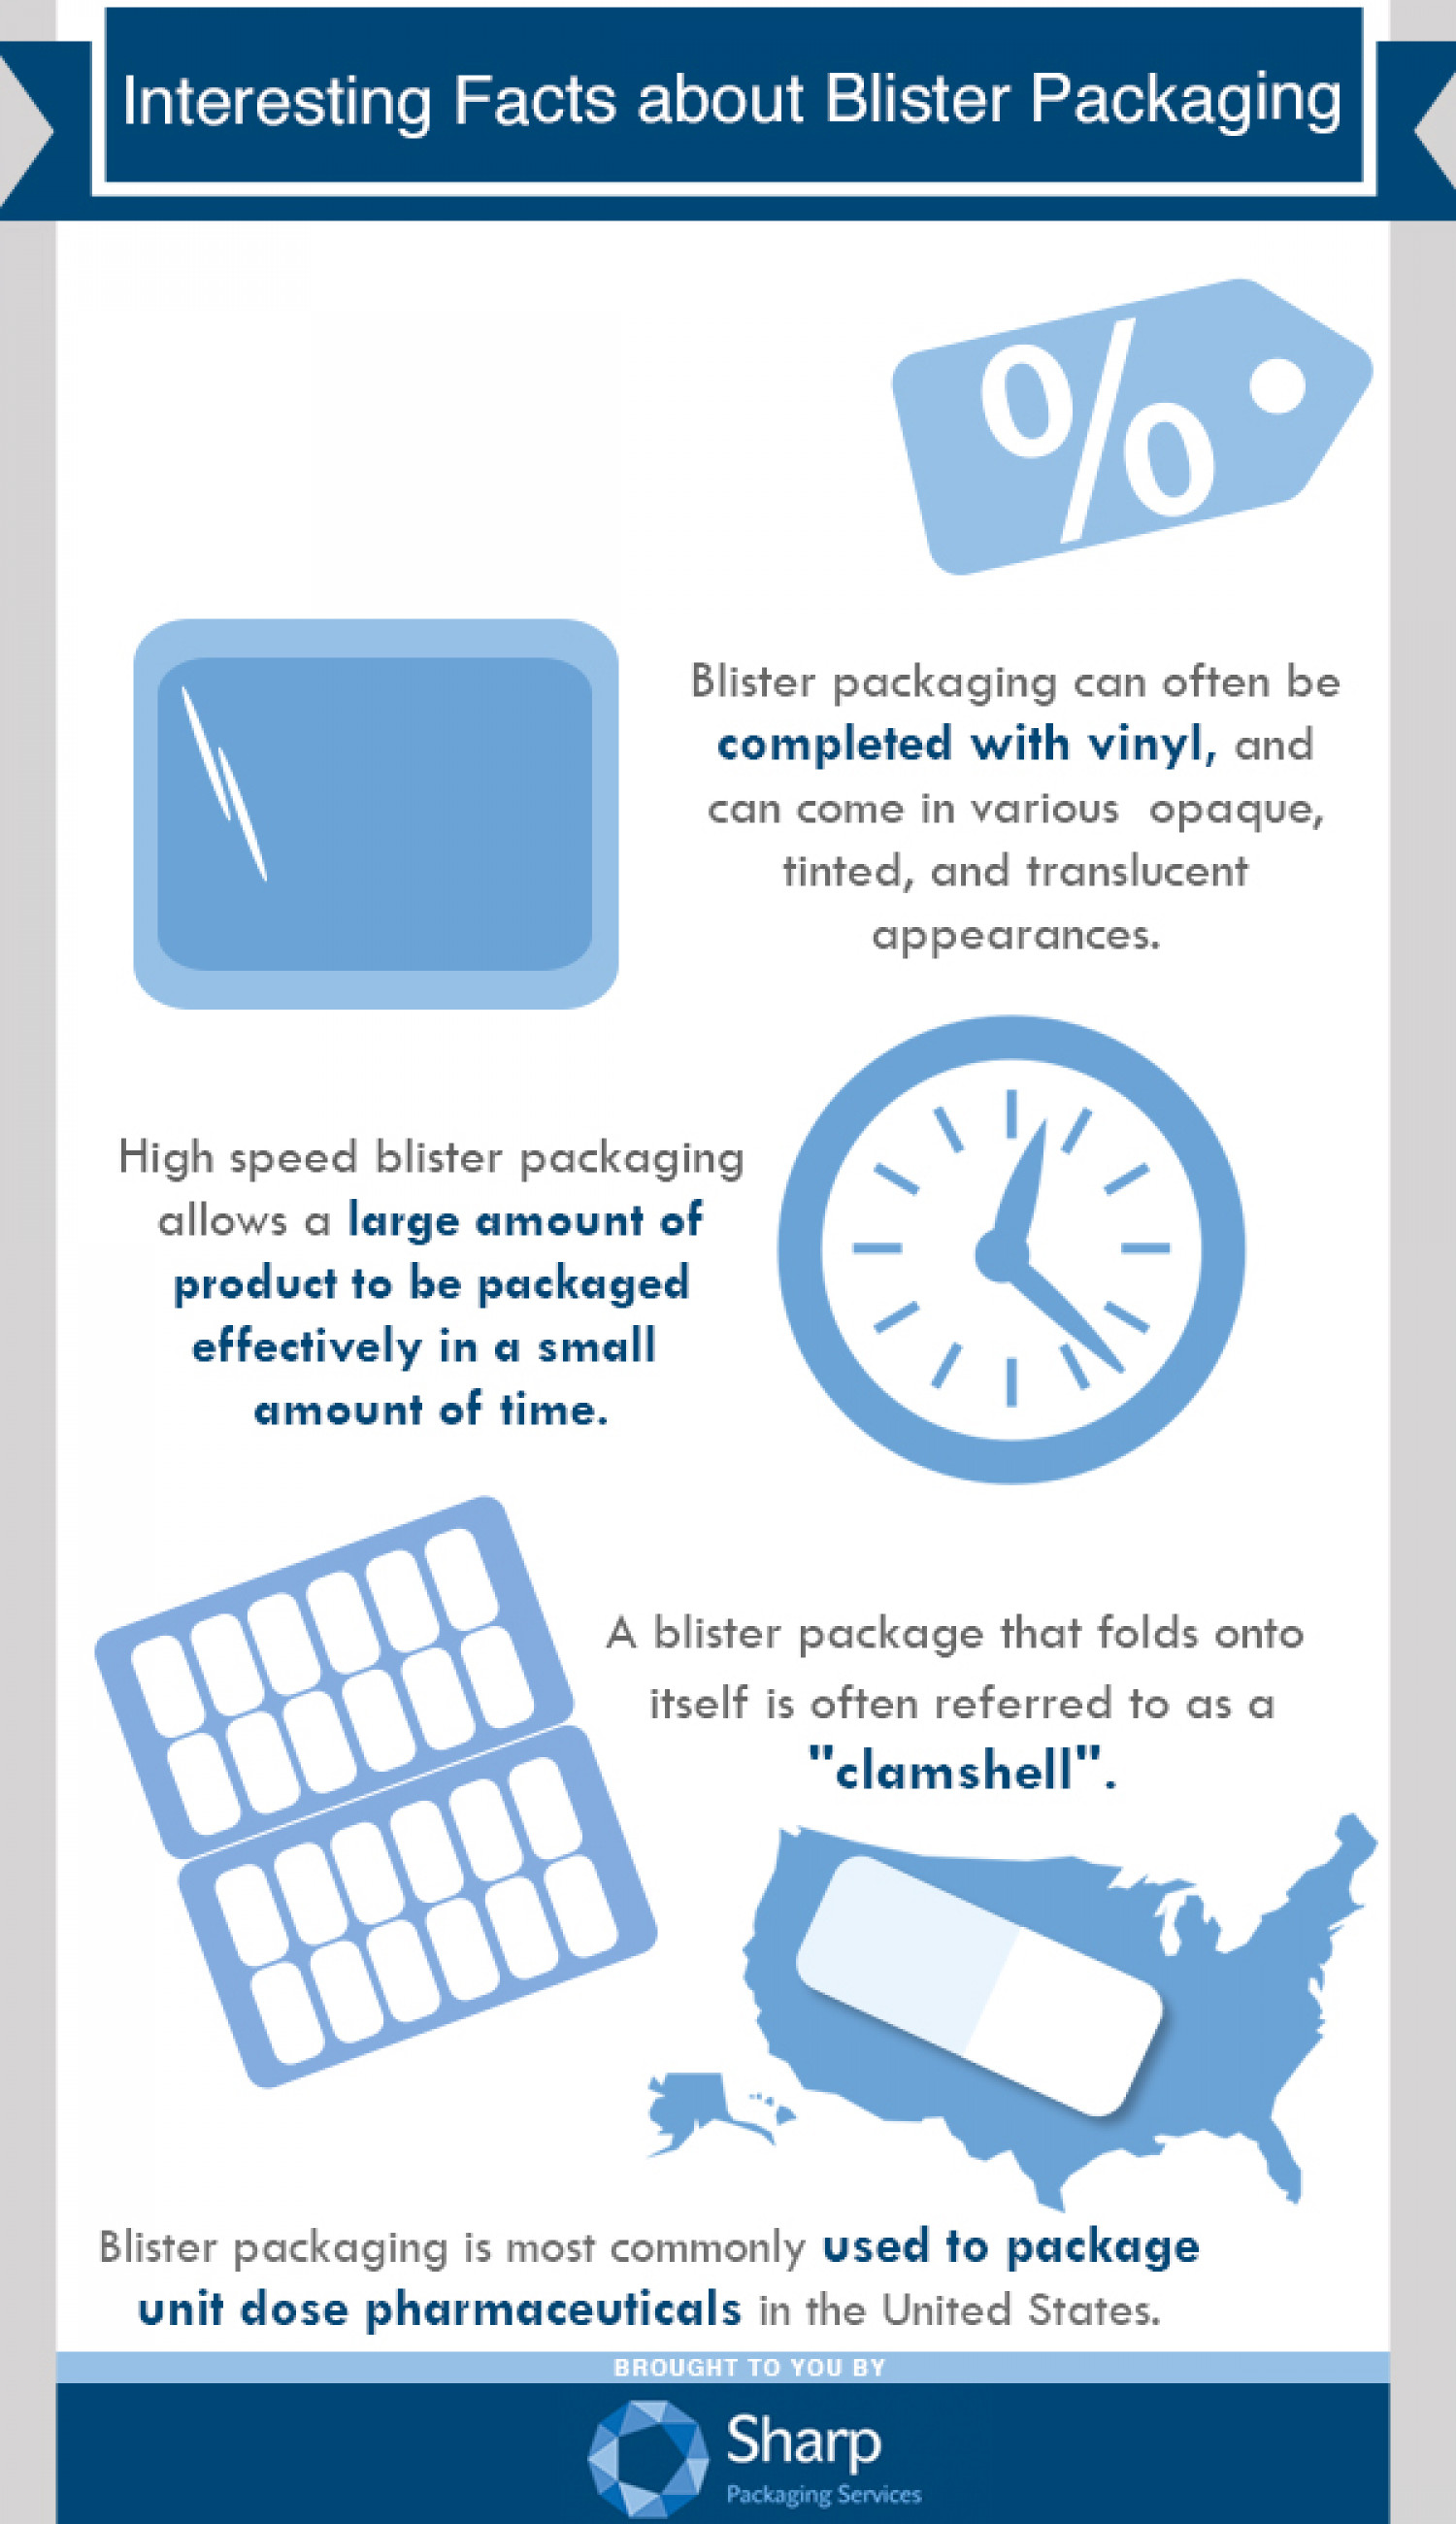 Interesting Facts About Blister Packaging Infographic